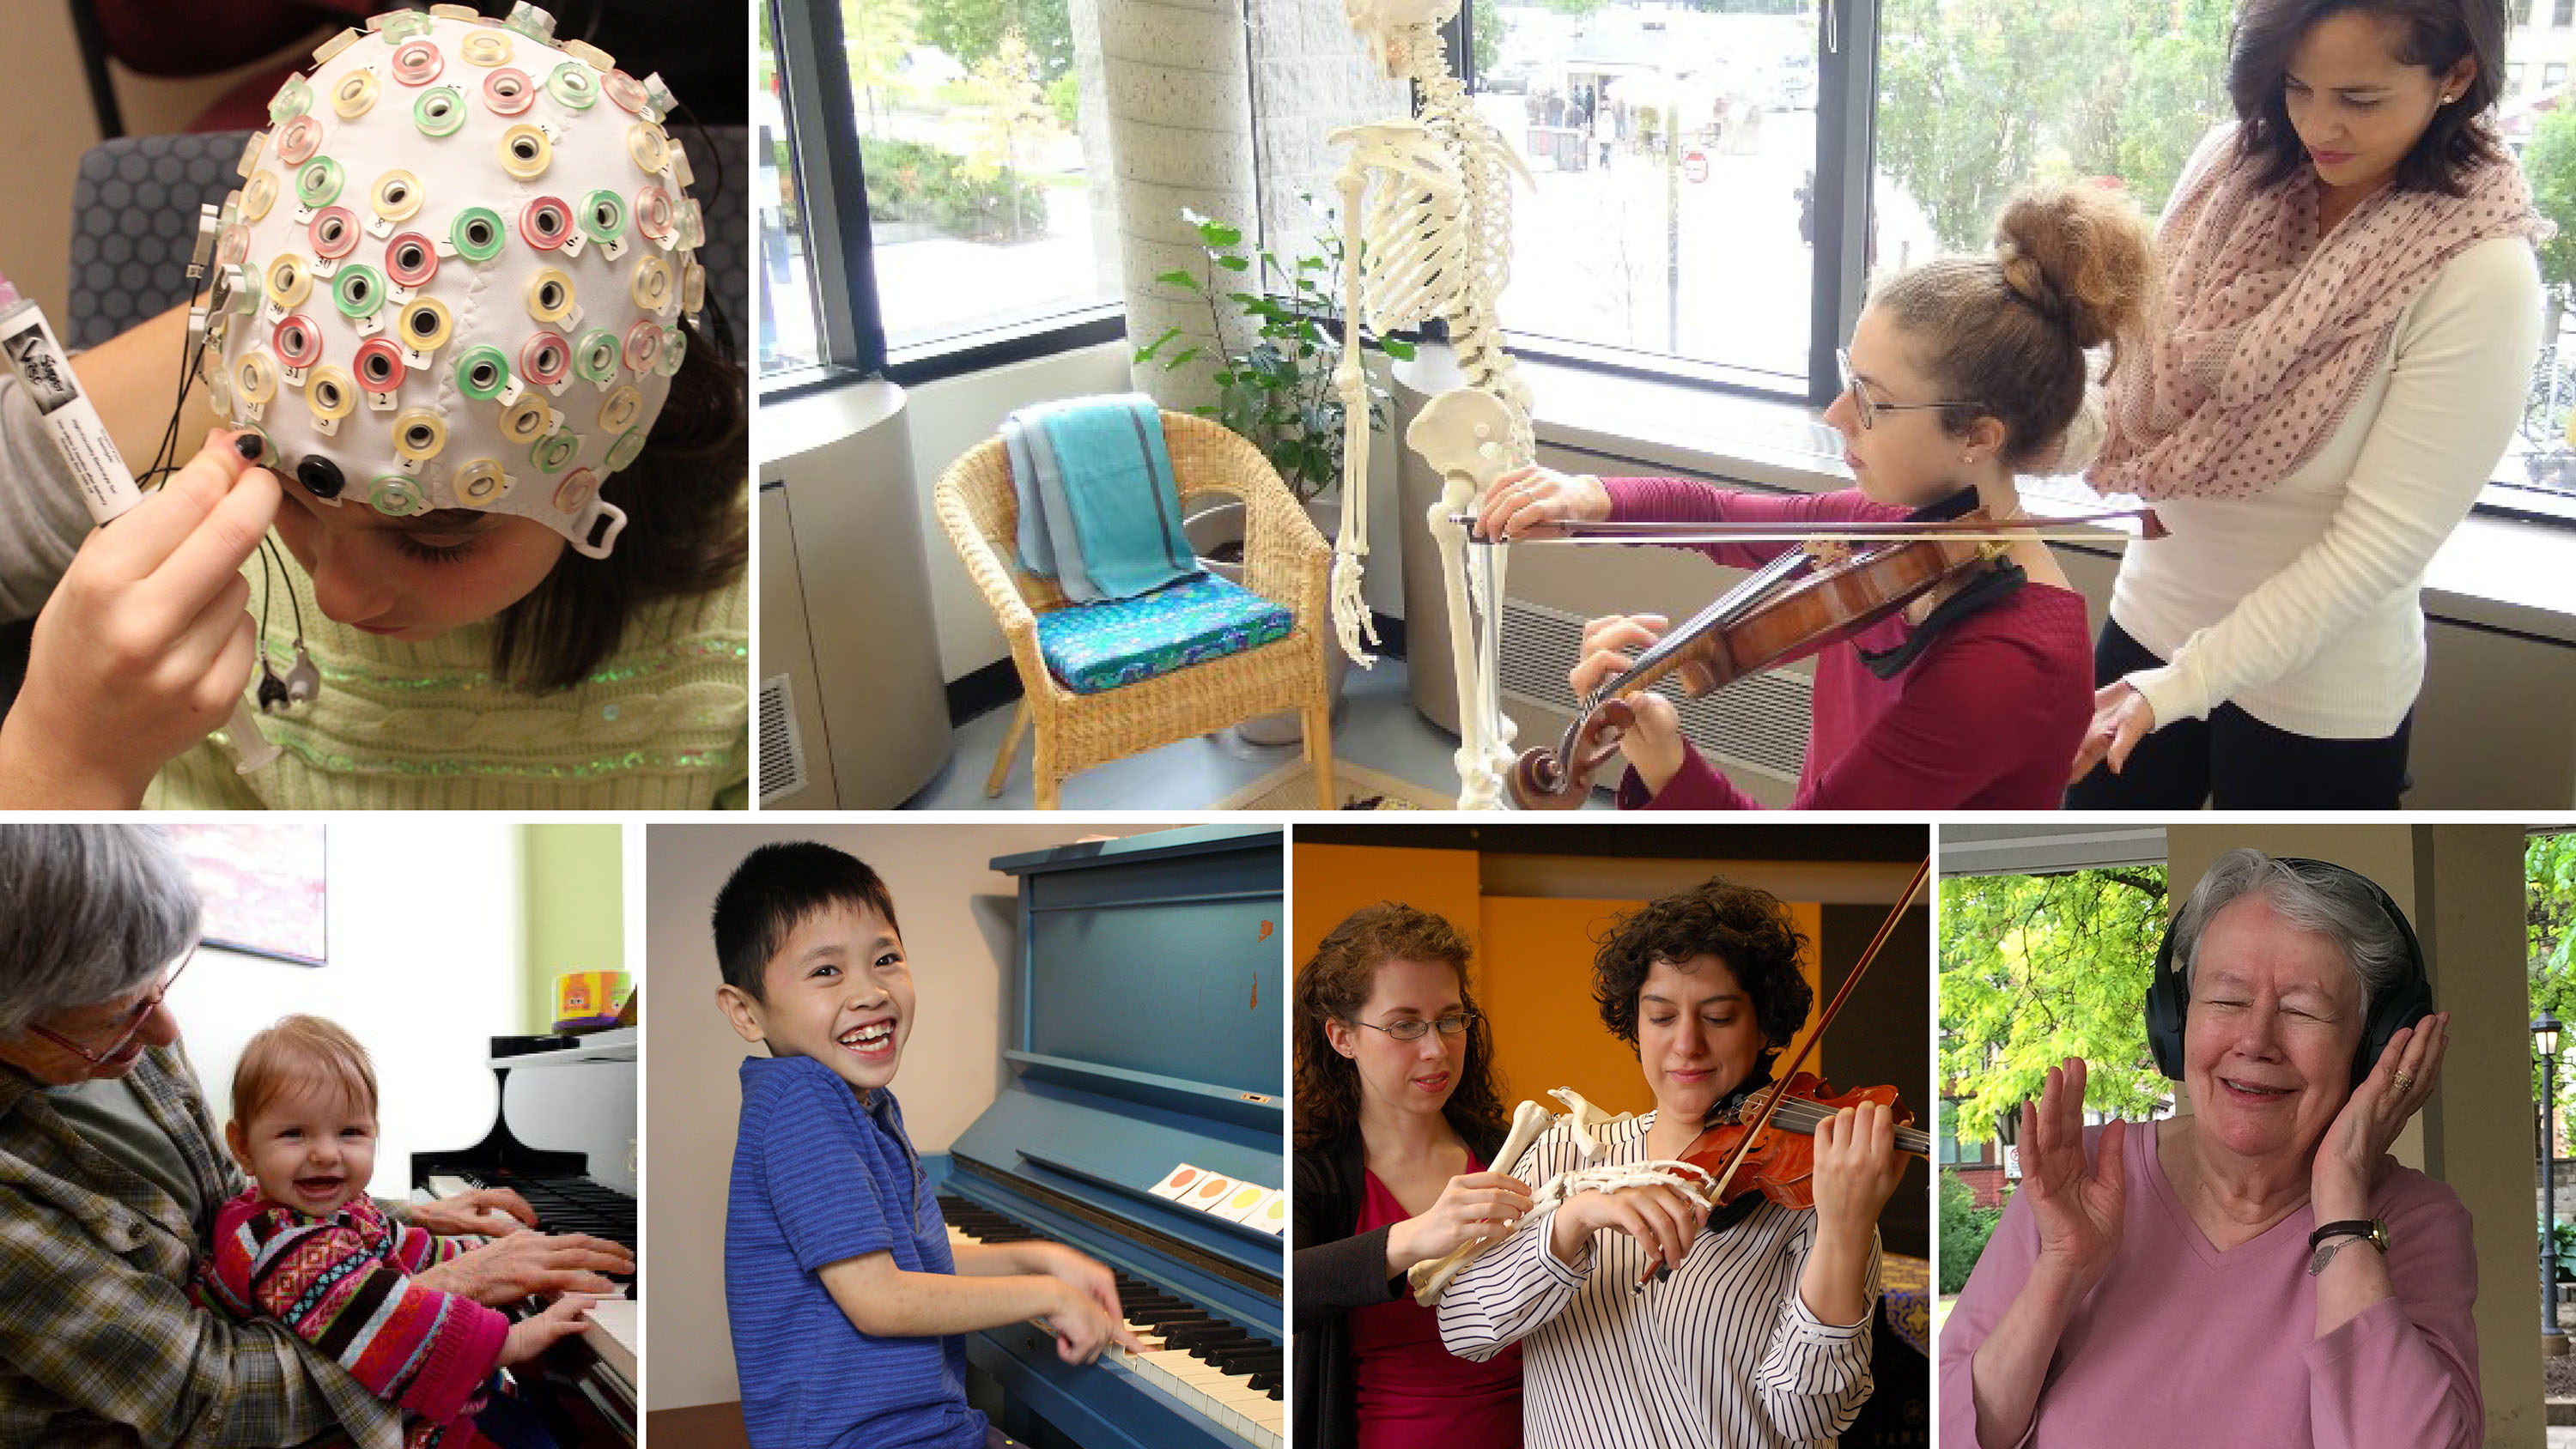 A photo montage showing the benefits of music and music therapy on physical, sensory, cognitive and mental health